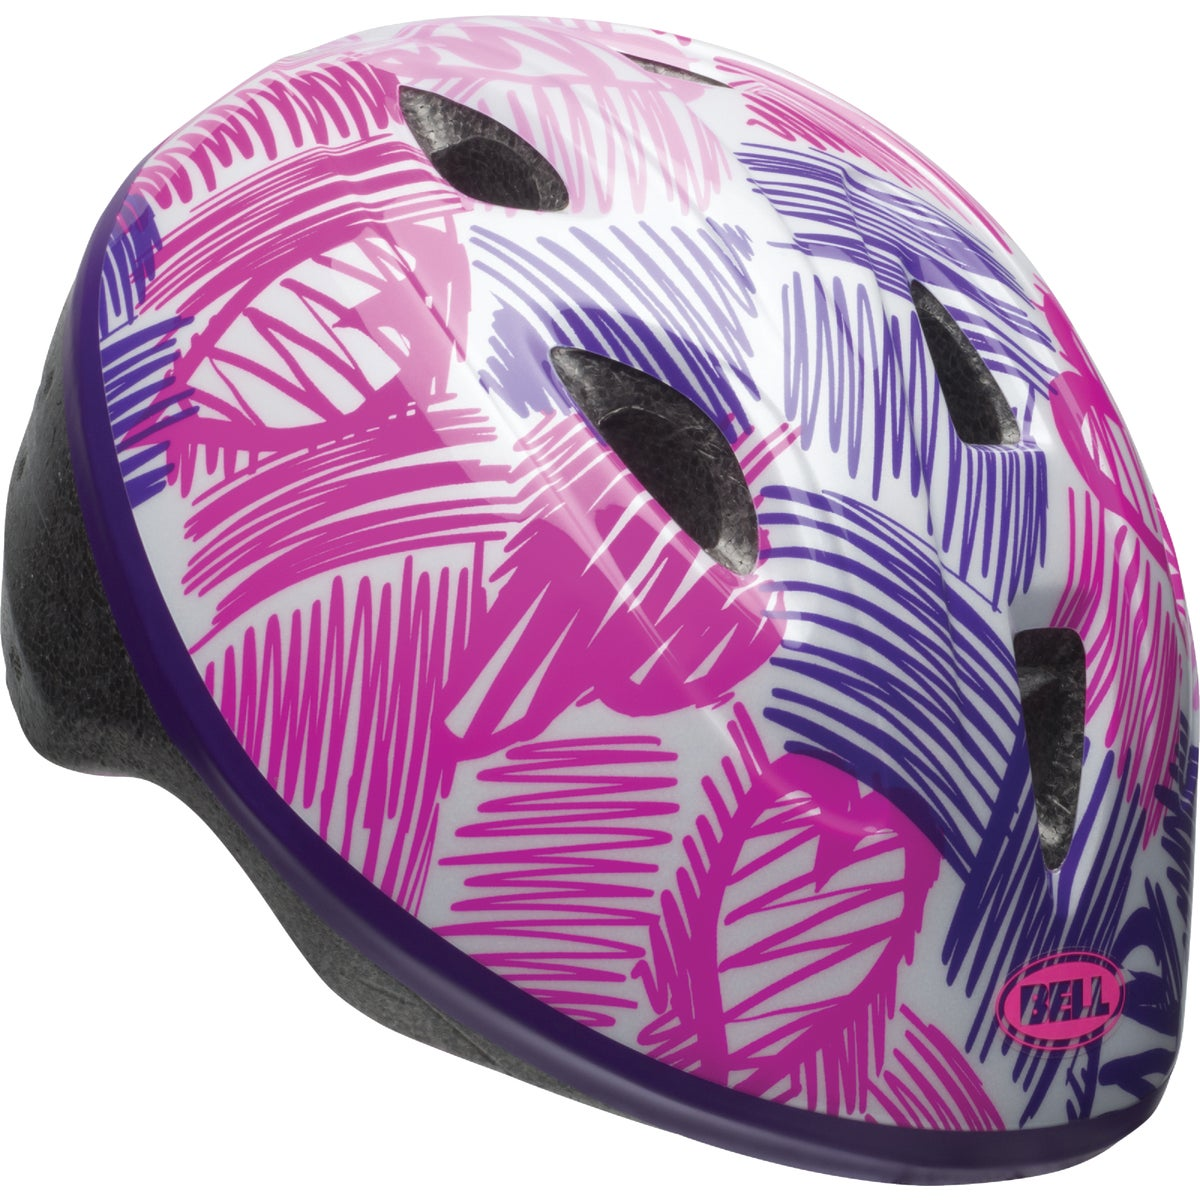 GIRLS TODDLER HELMET - 7049676 by Bell Sports